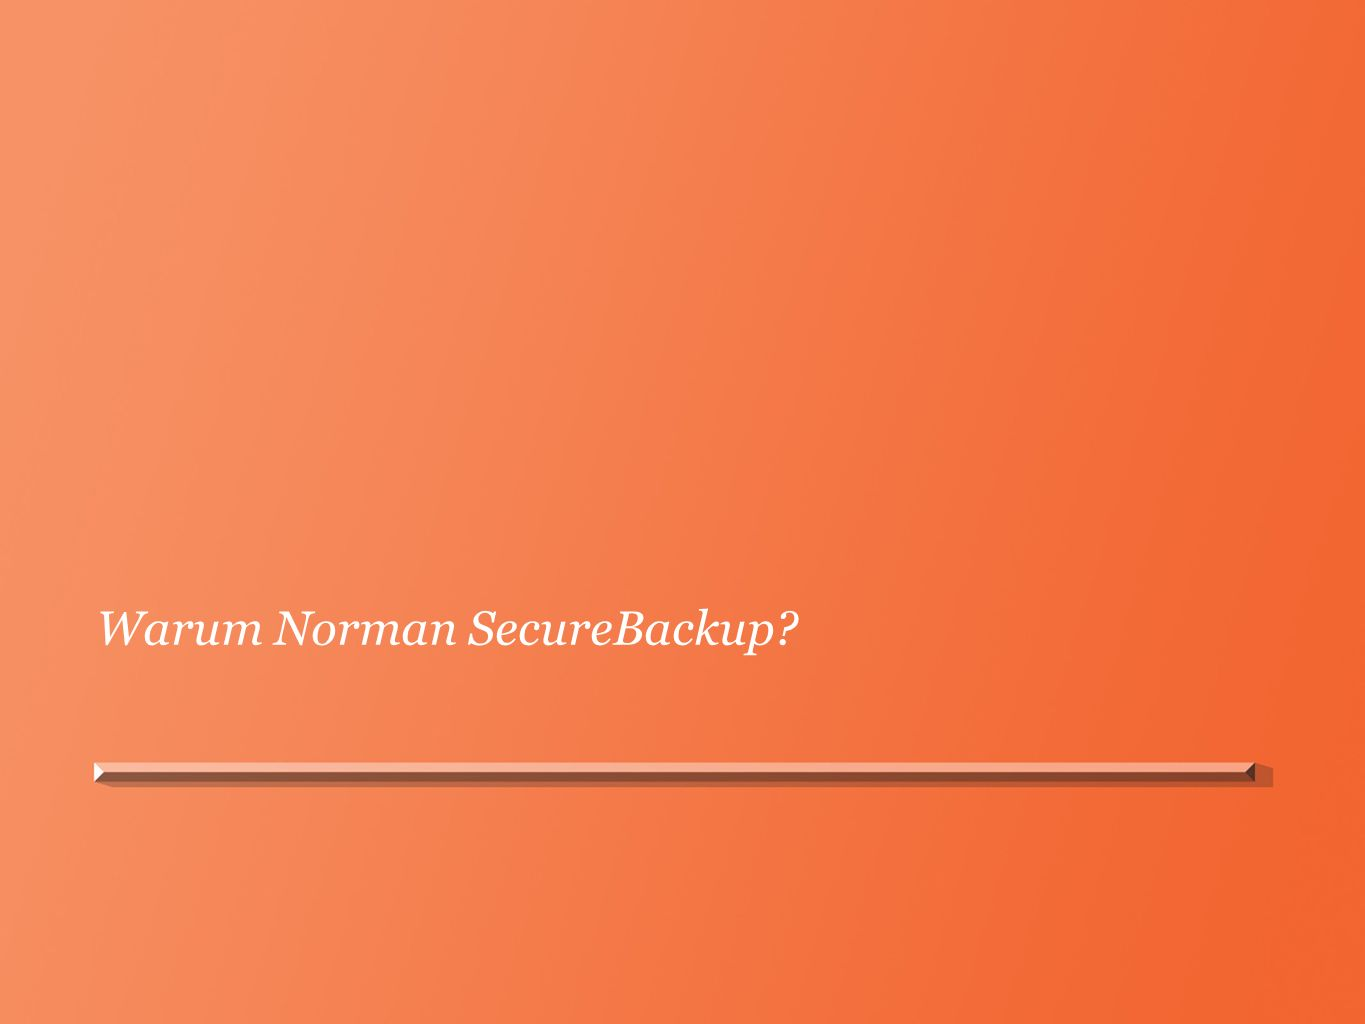 Warum Norman SecureBackup